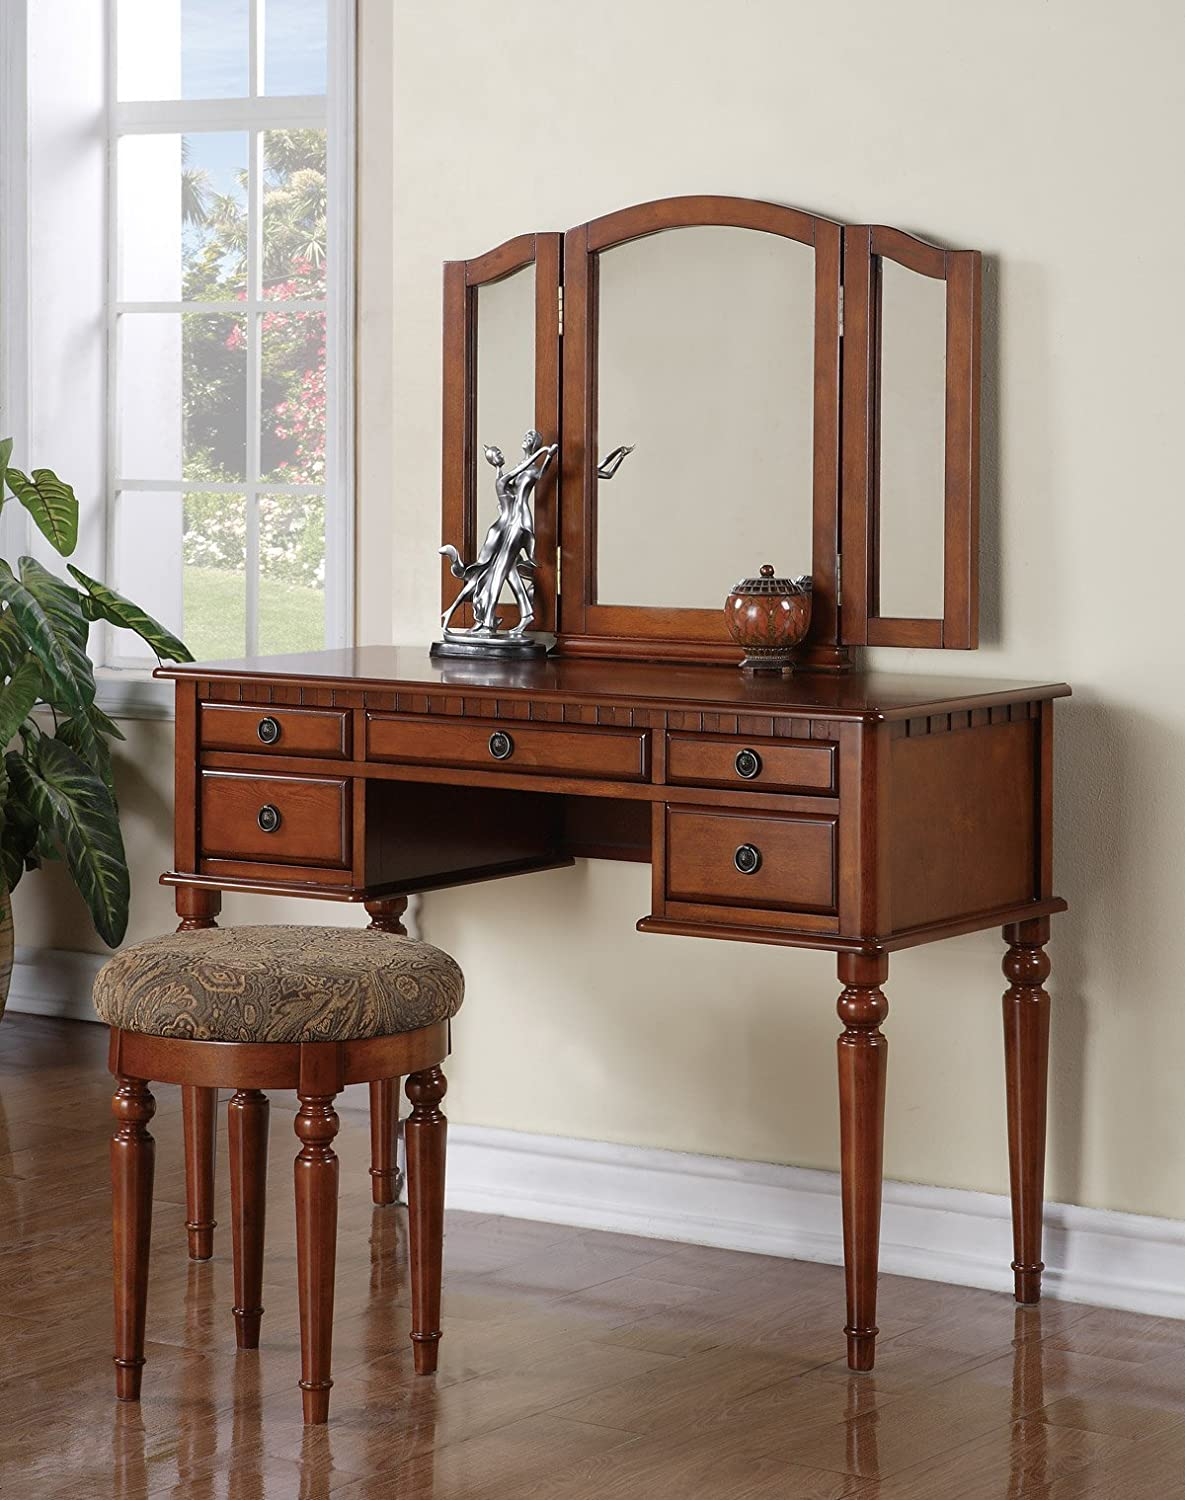 Bobkona F4073 St. Croix Collection Vanity Set with Stool, Walnut